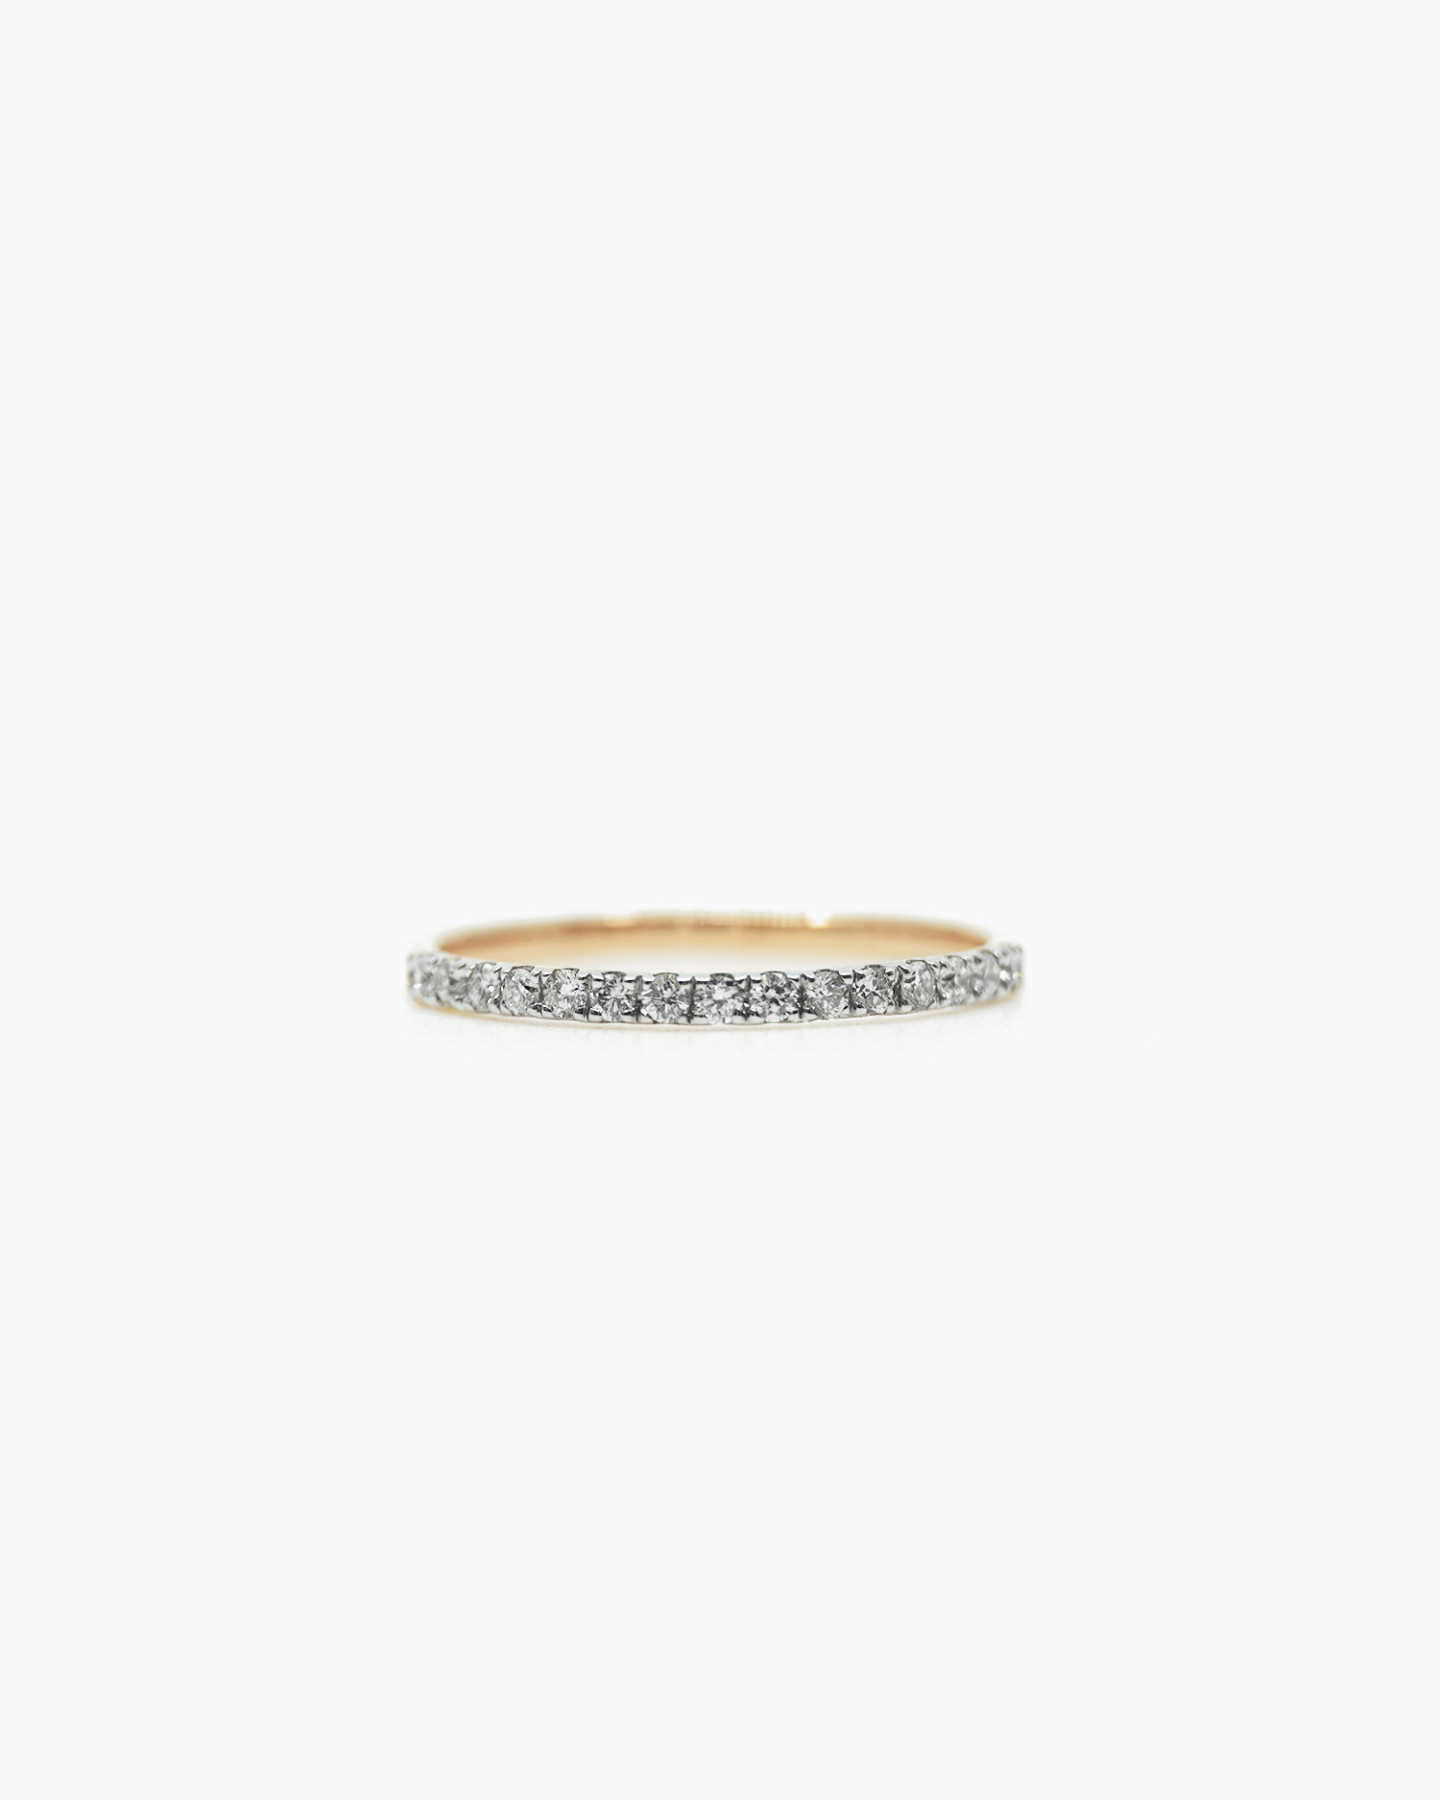 Diamond Wedding Band - undefined - 0